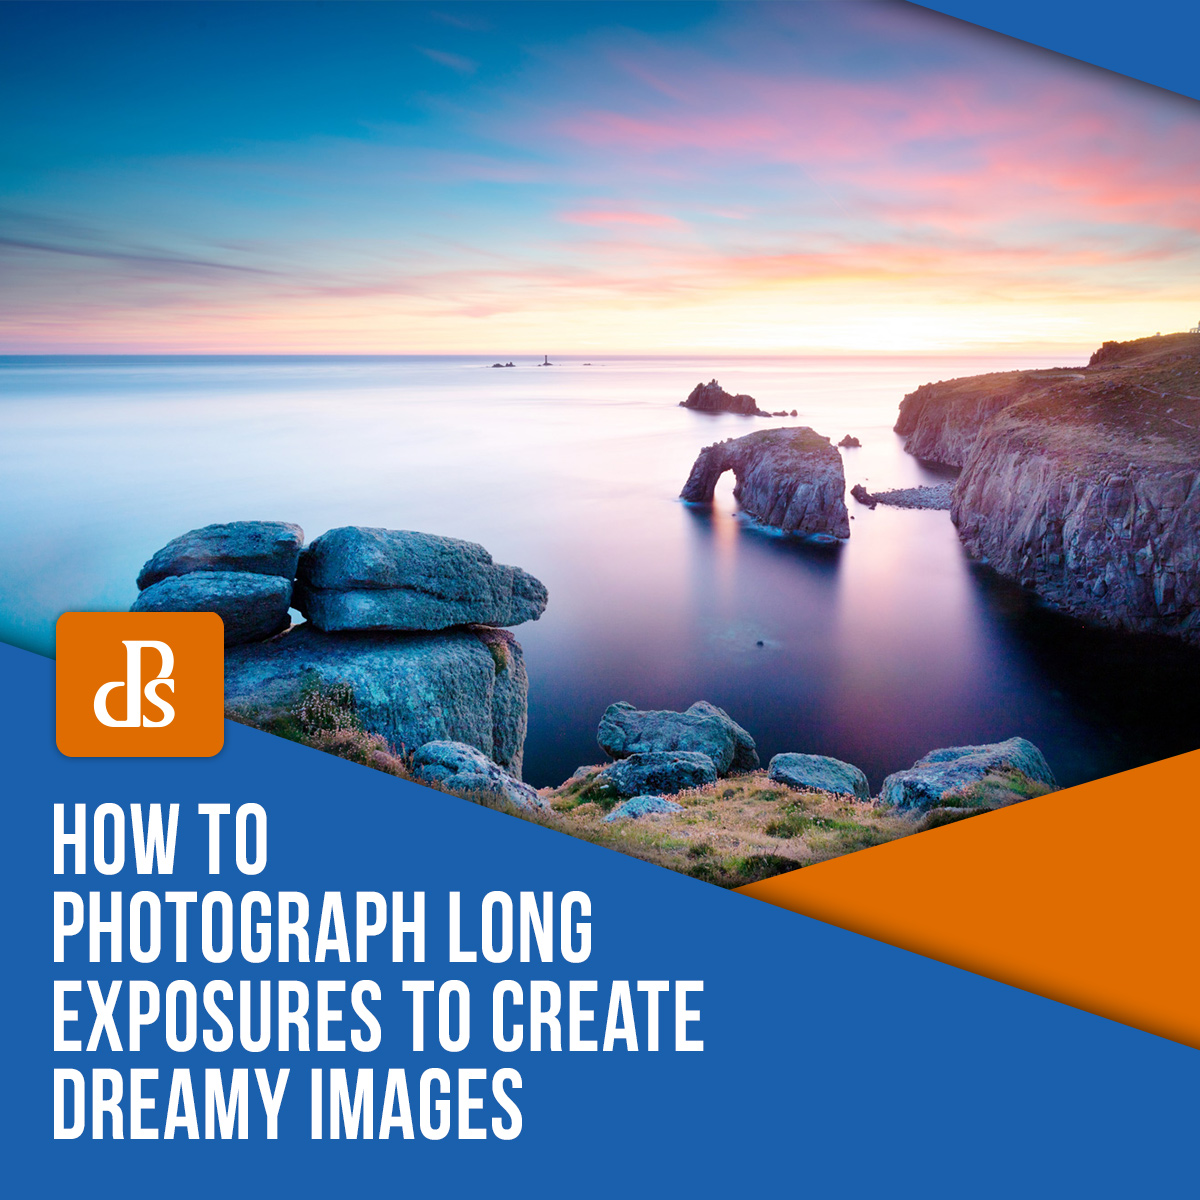 dps-how-to-photograph-long-exposures